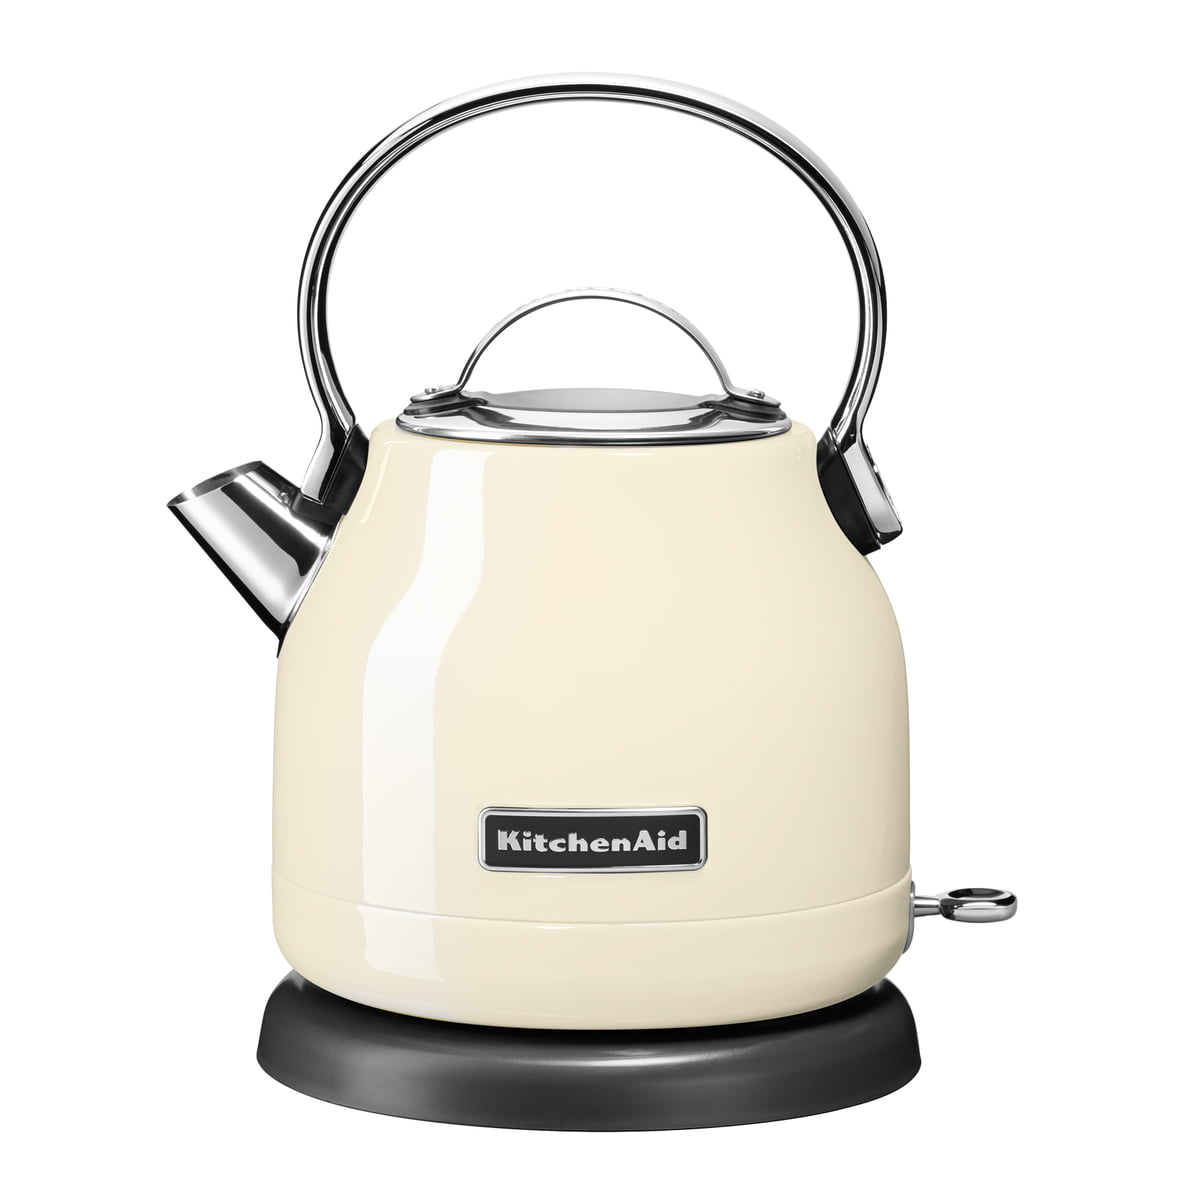 The Electric Kettle 5KEK1222 by Kitchen Aid